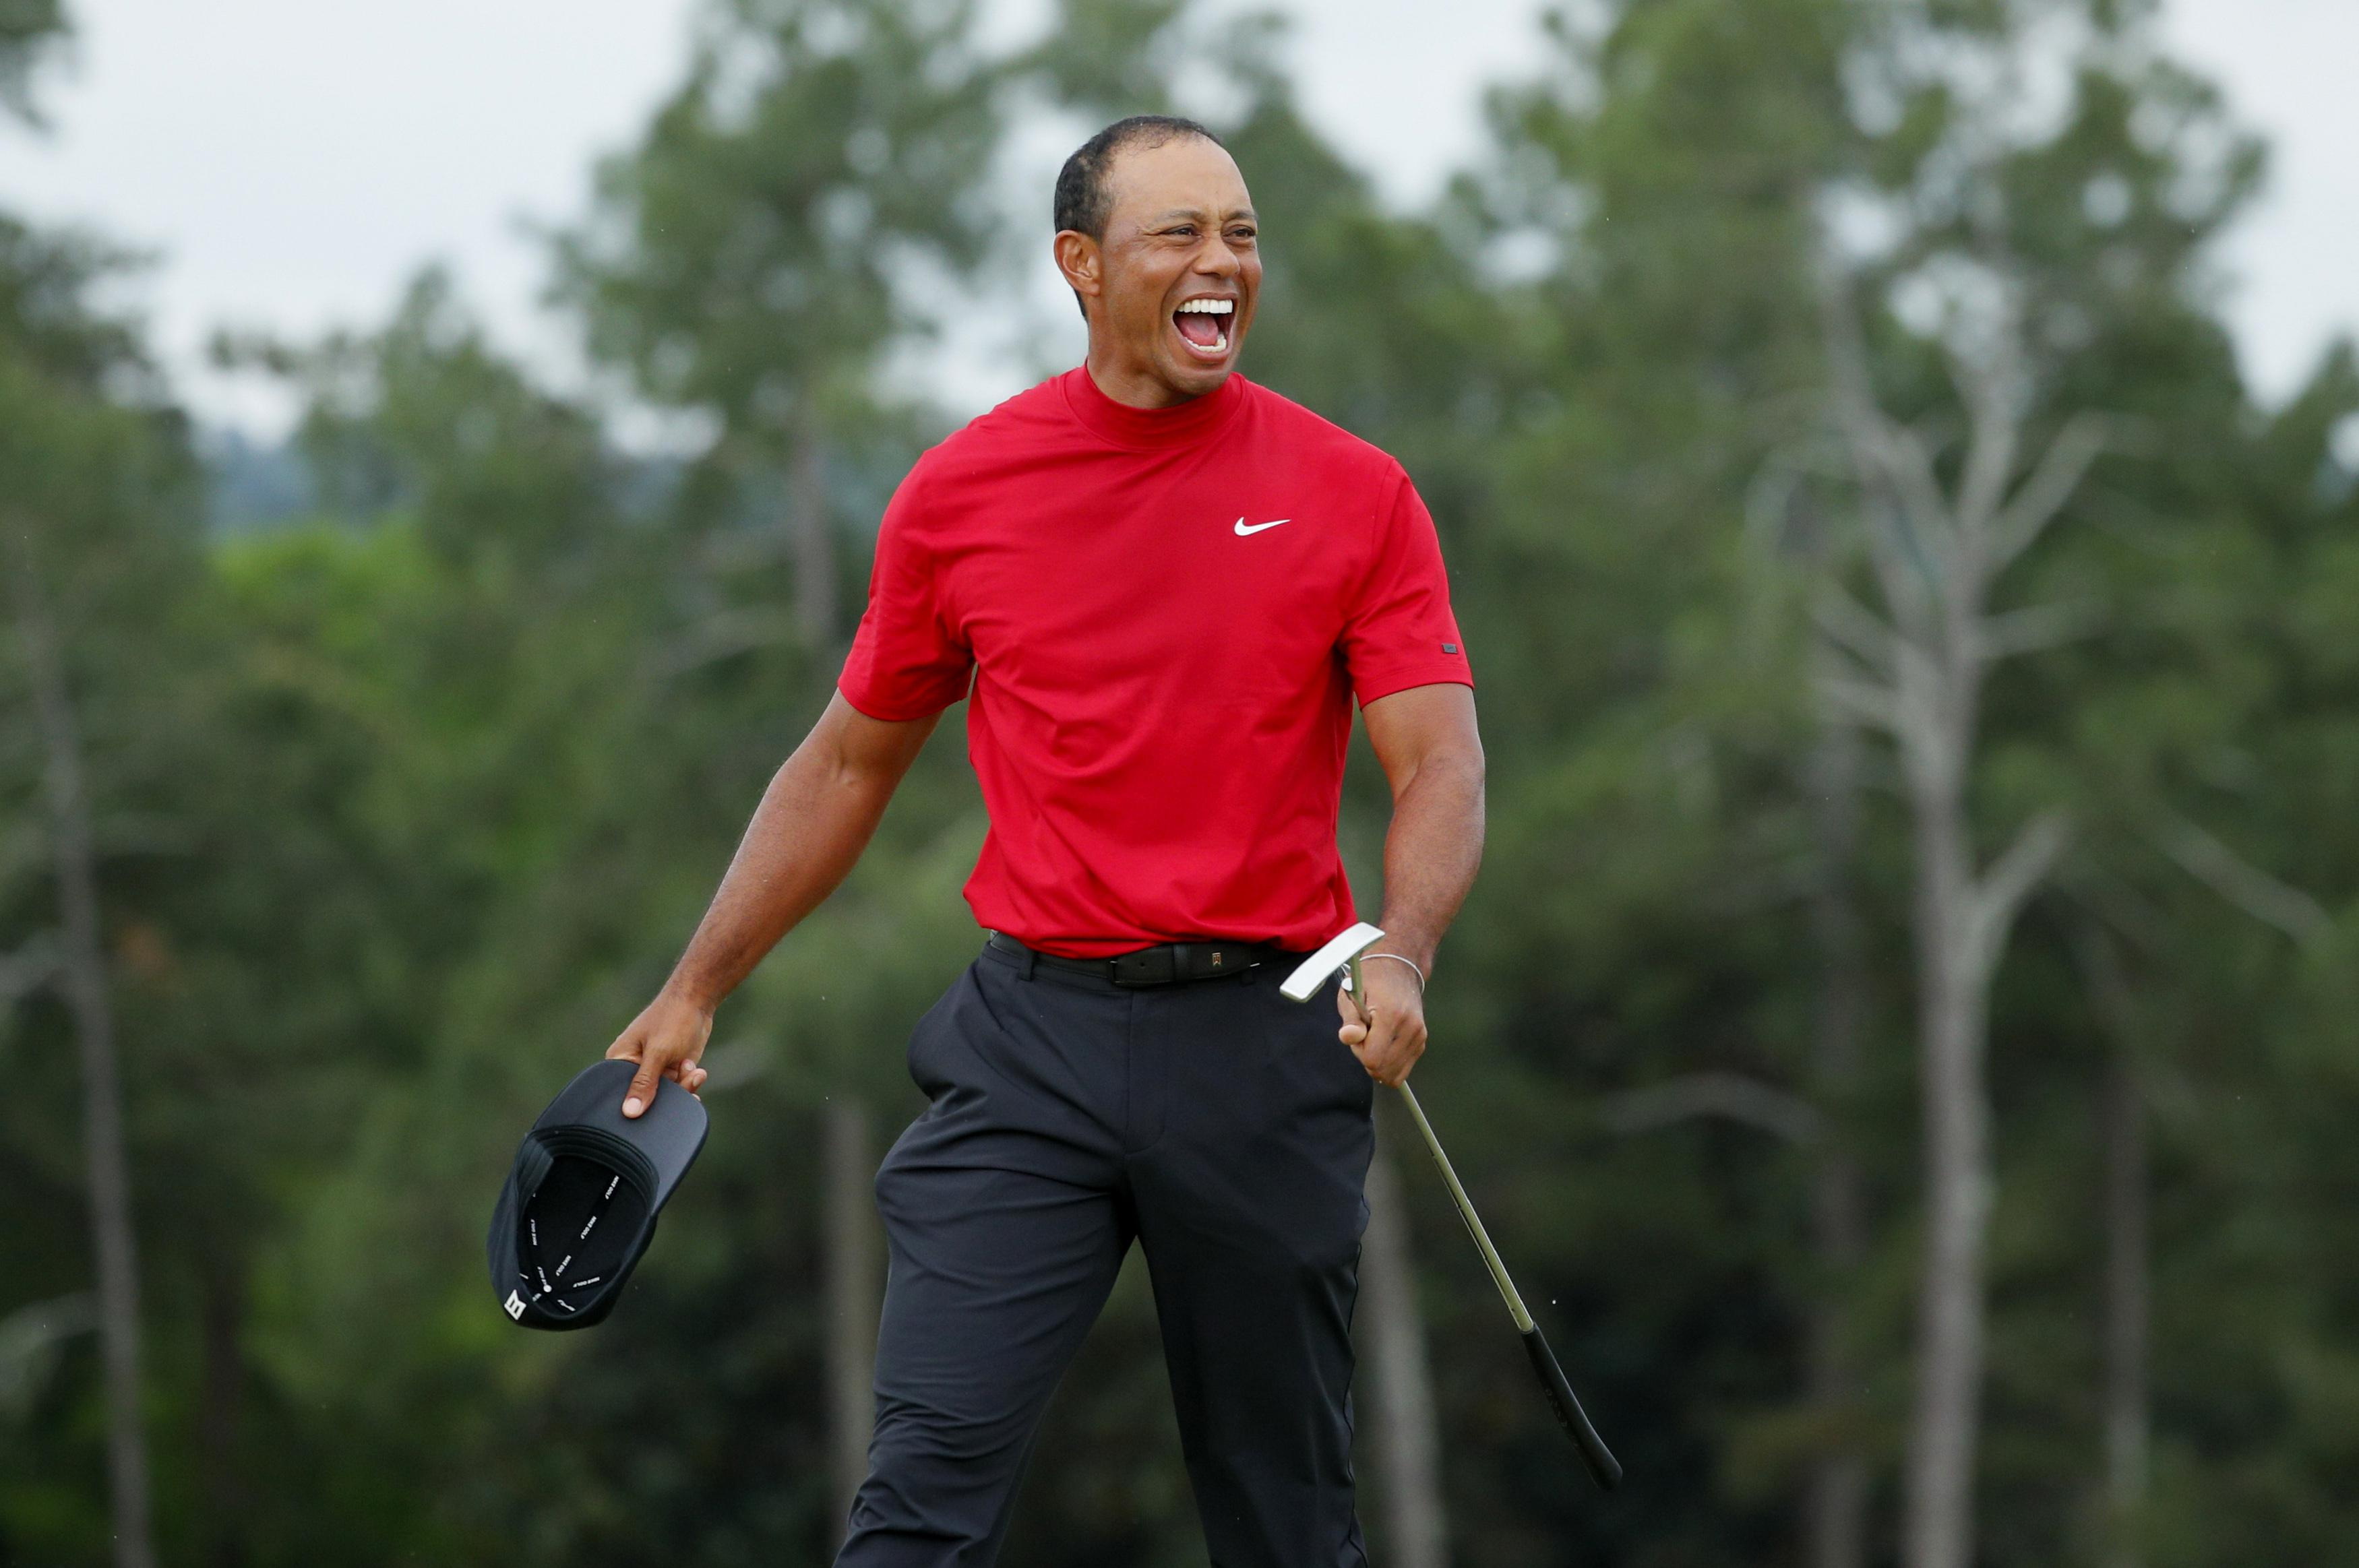 Tiger Woods' Masters win gives Nike investors another reason to cheer